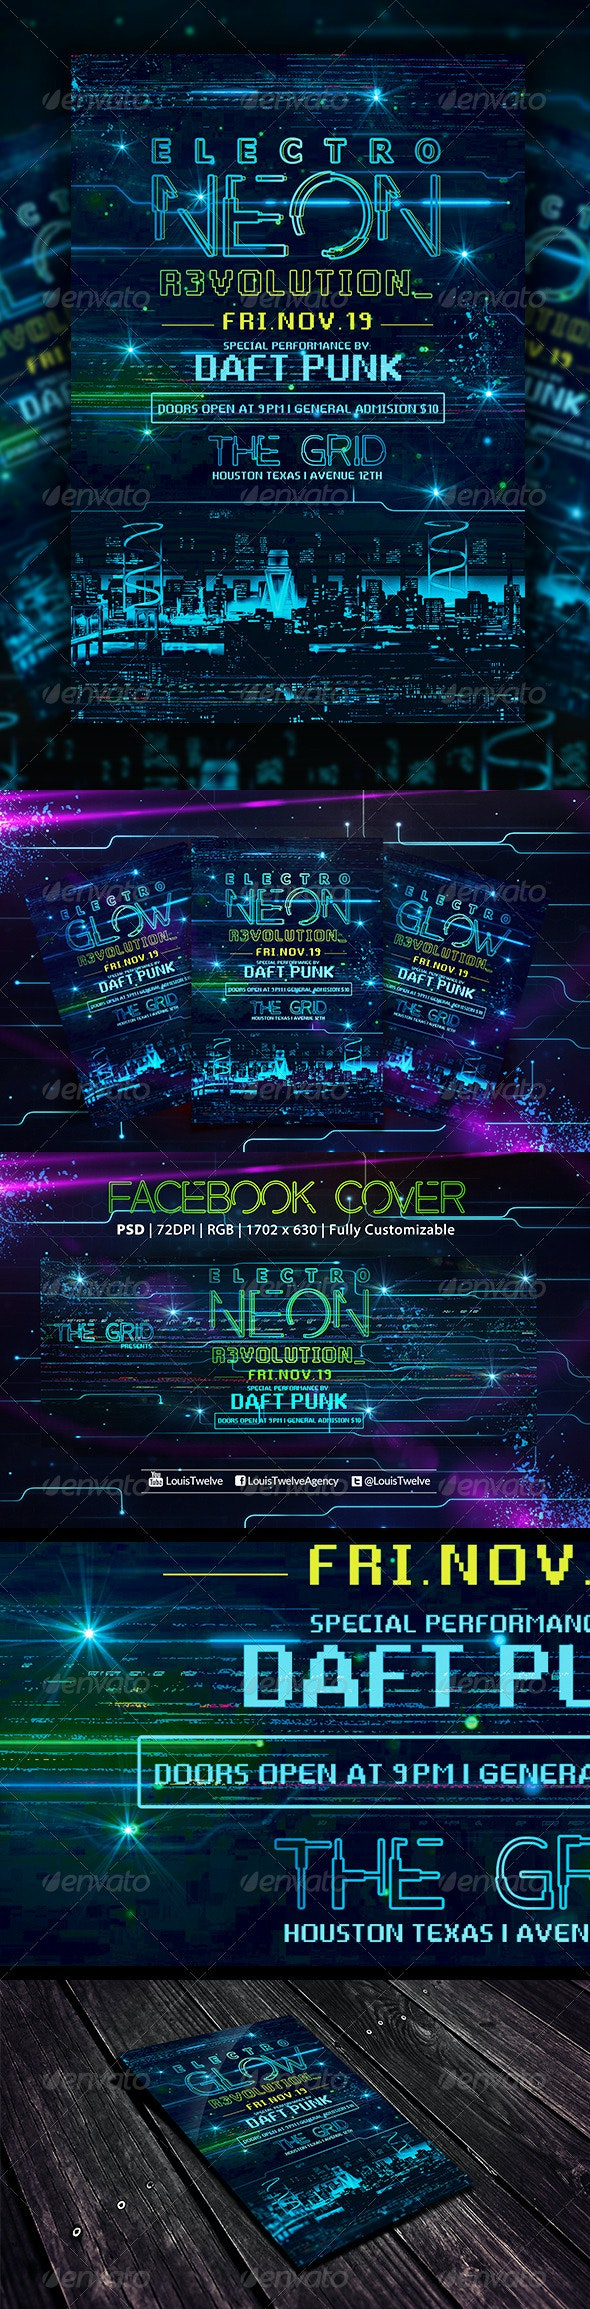 Electro Neon   Flyer + Fb Cover - Events Flyers